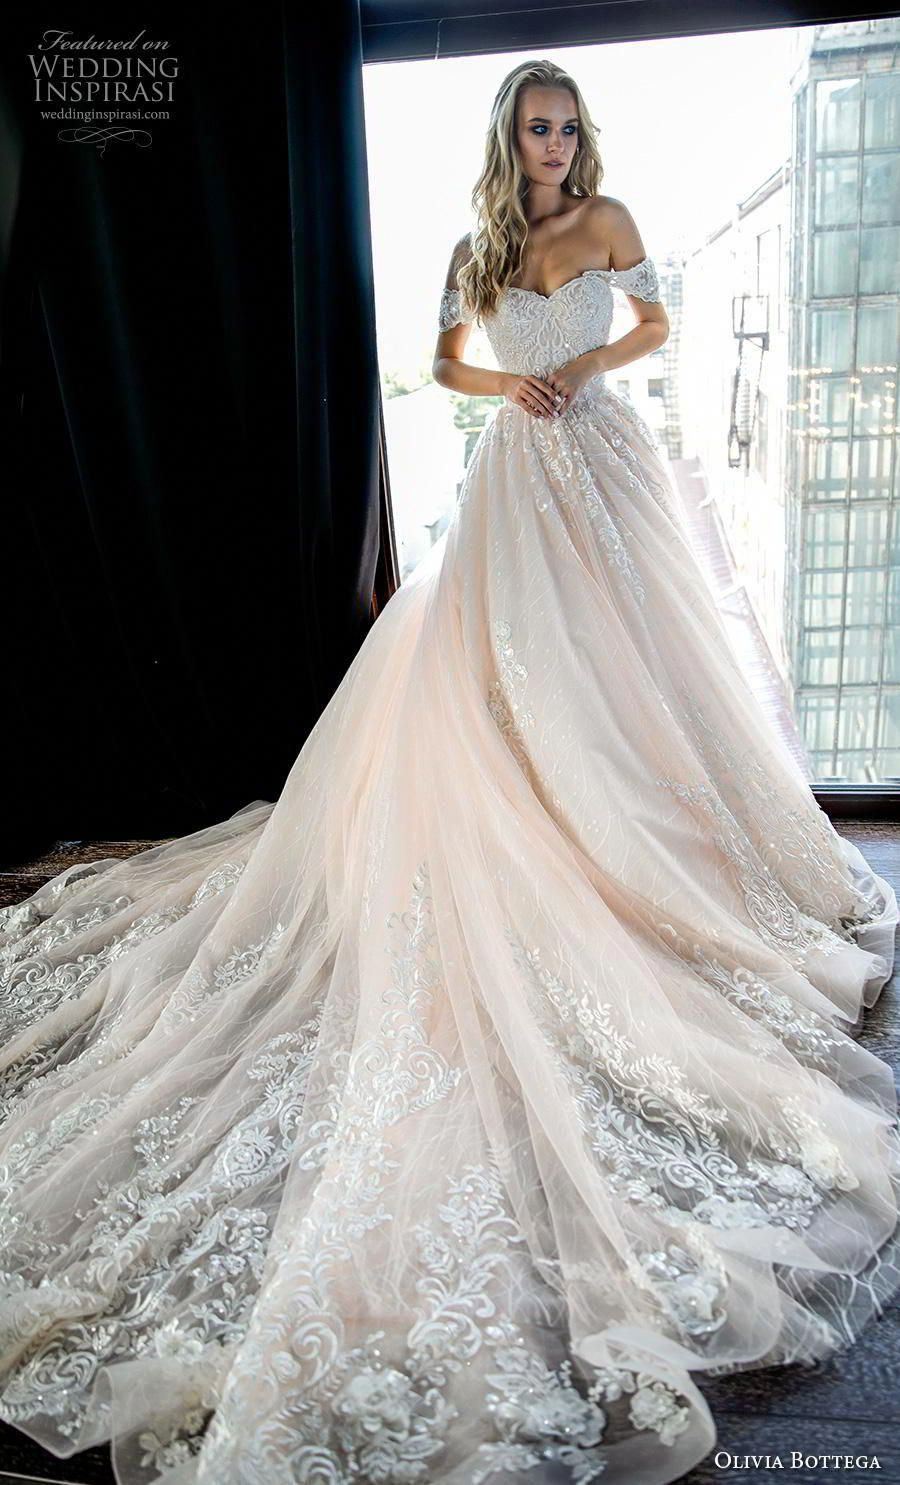 olivia bottega 2019 bridal short sleeves off the shoulder sweetheart neckline heavily embellished bodice romantic blush ball gown a line wedding dress royal train (2) mv  Olivia Bottega 2019 Wedding is part of Wedding dresses beaded -